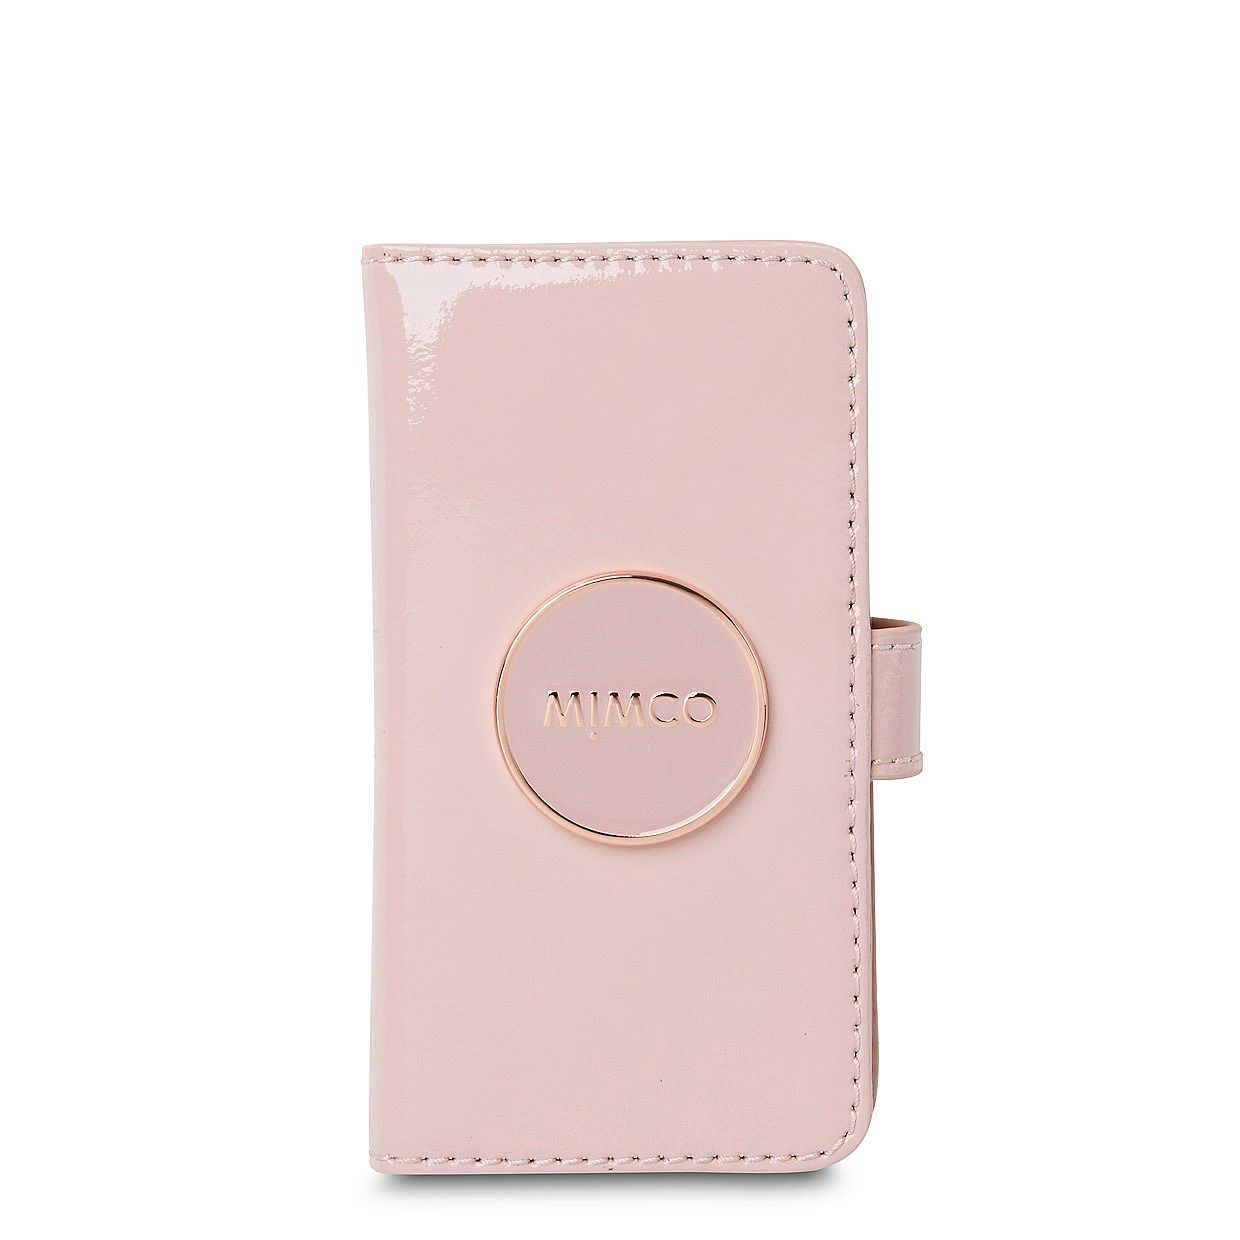 official photos 3ad3c 24ad0 Mimco Flip Case For iPhone 5 in Blossom Pink | Cases in 2019 ...